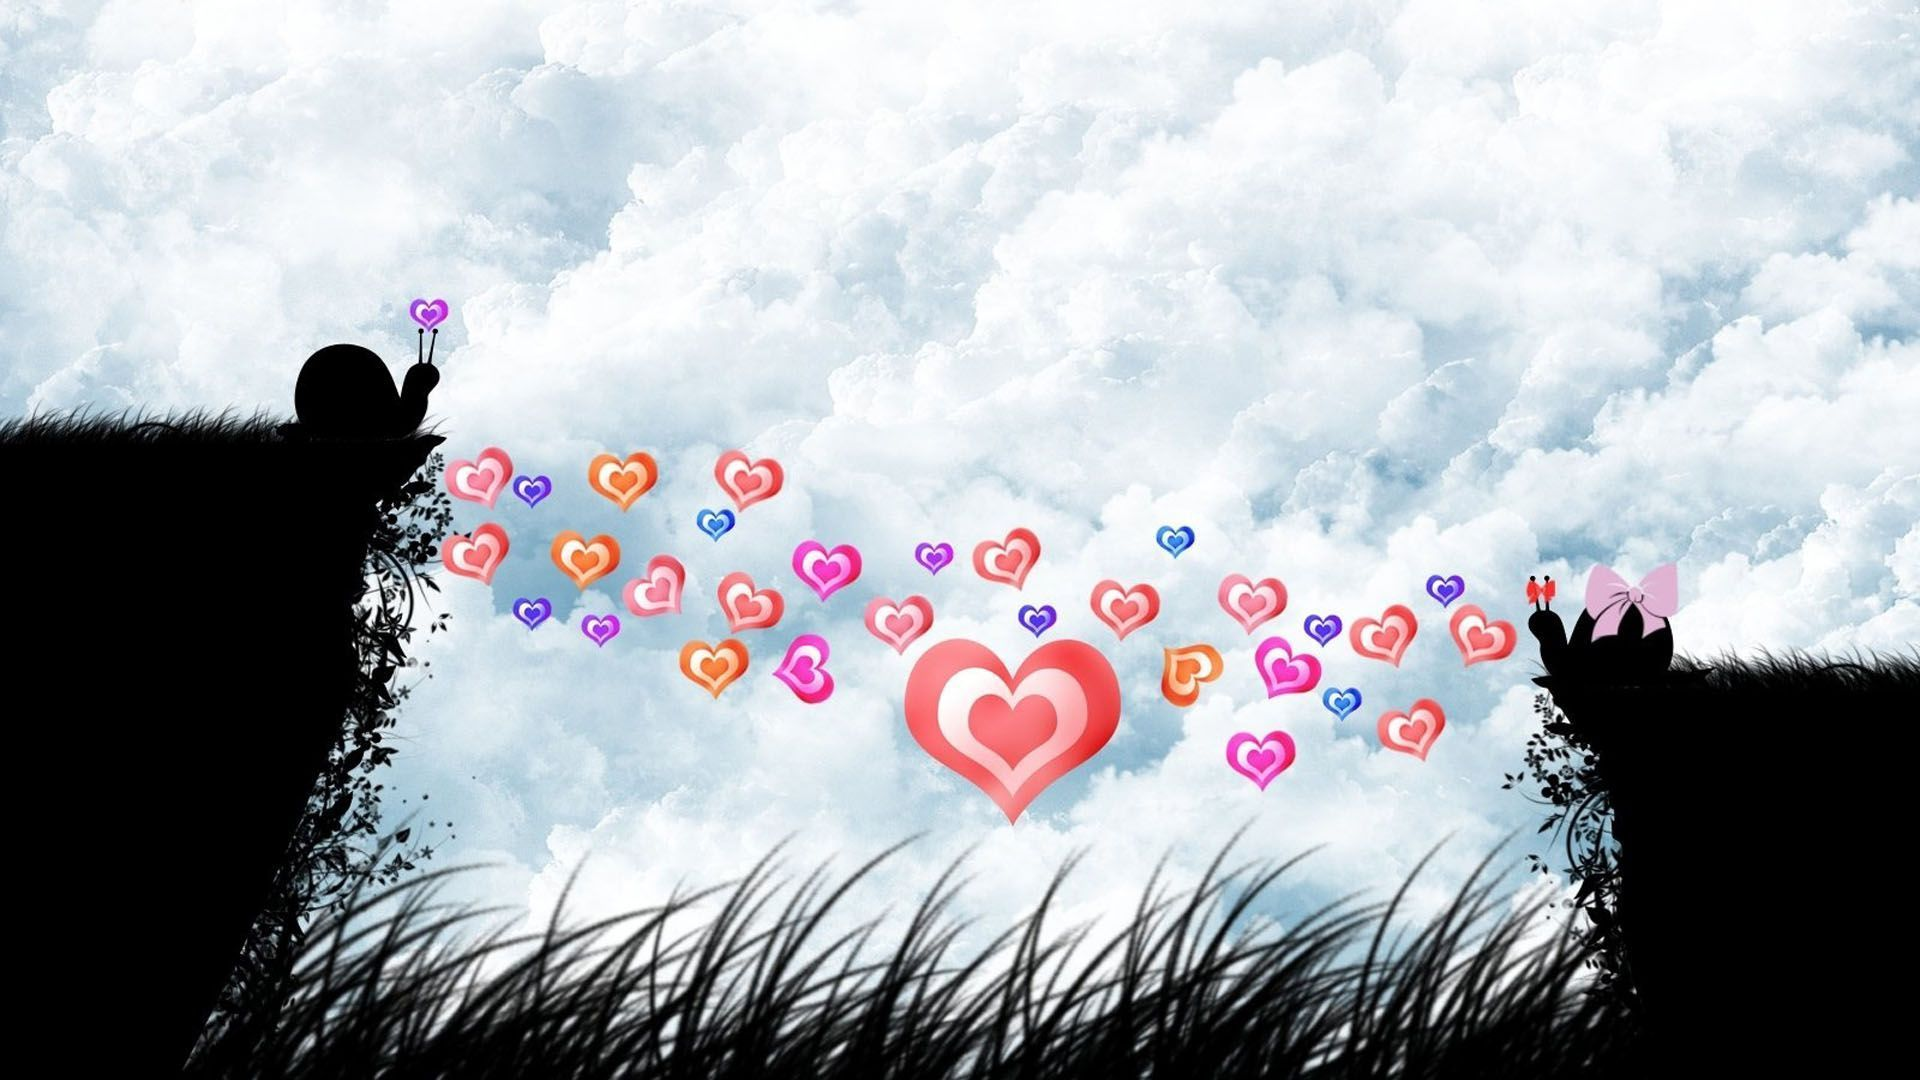 Hdq Cover Love Top Love Wallpapers